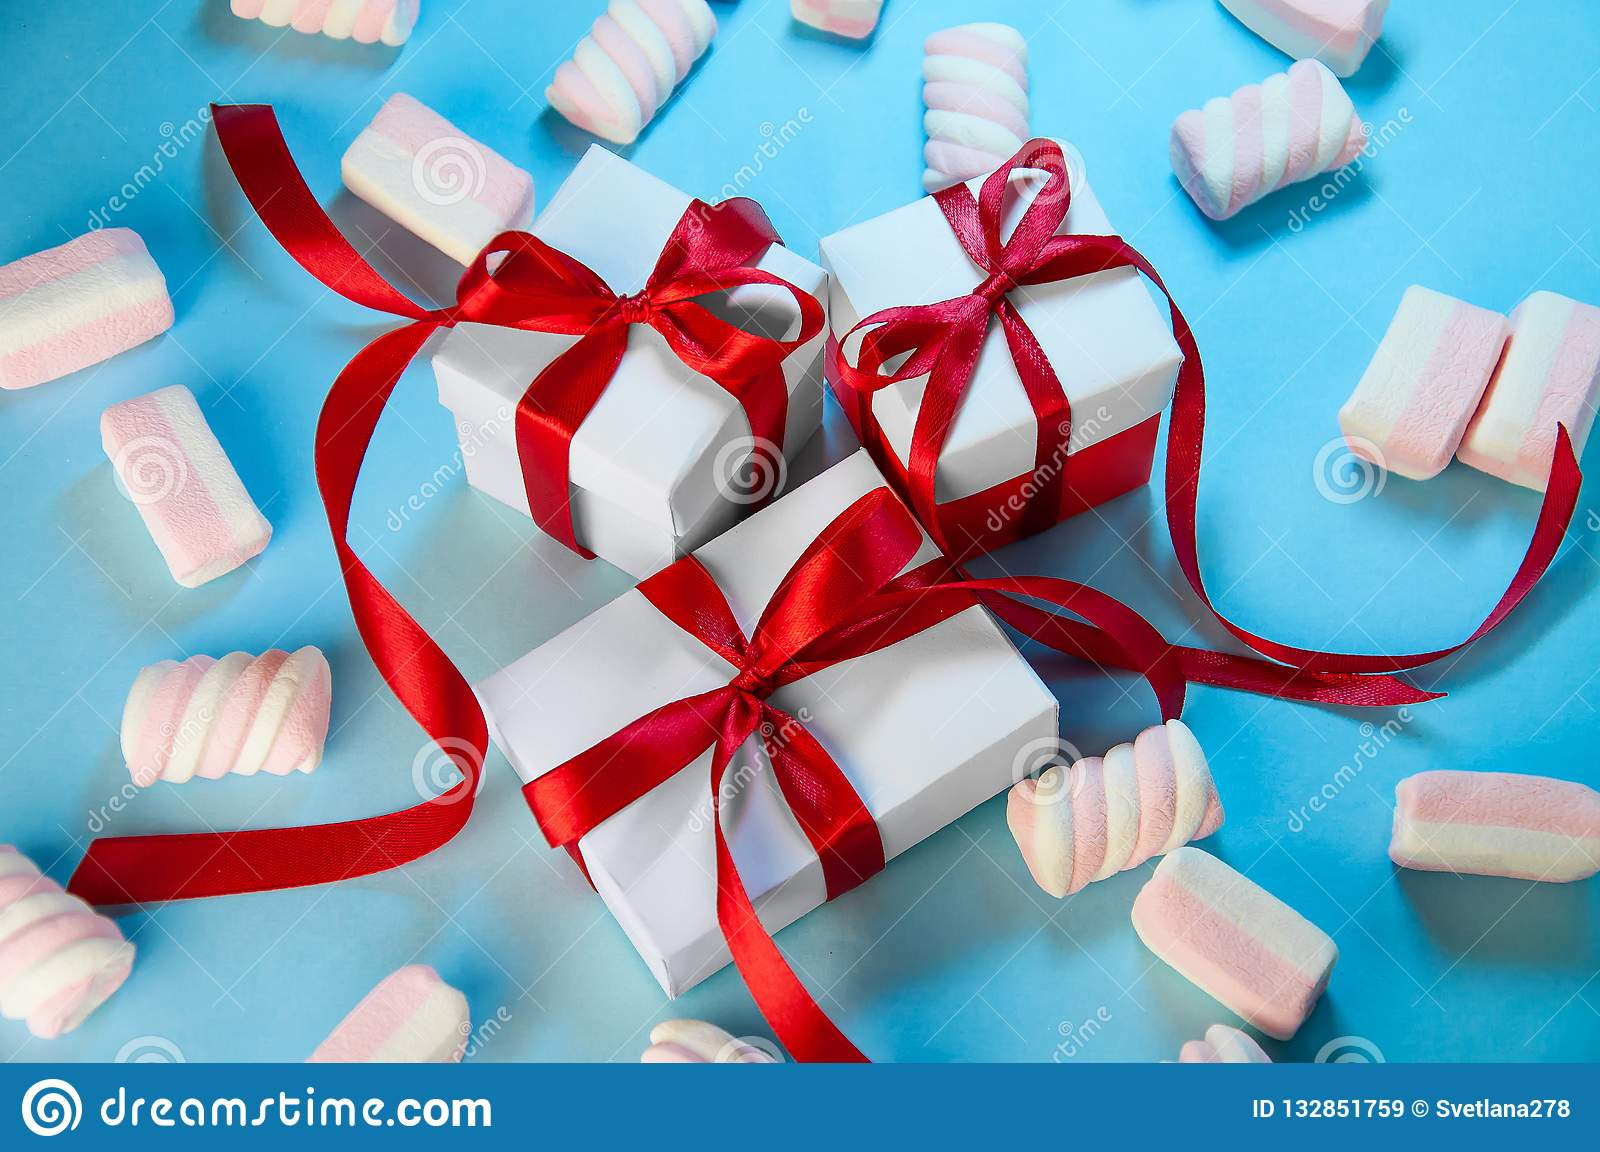 Christmas Holiday Composition. New Year Gift White Boxes Red Ribbon with Marshmallows on Blue Background. Flat Lay